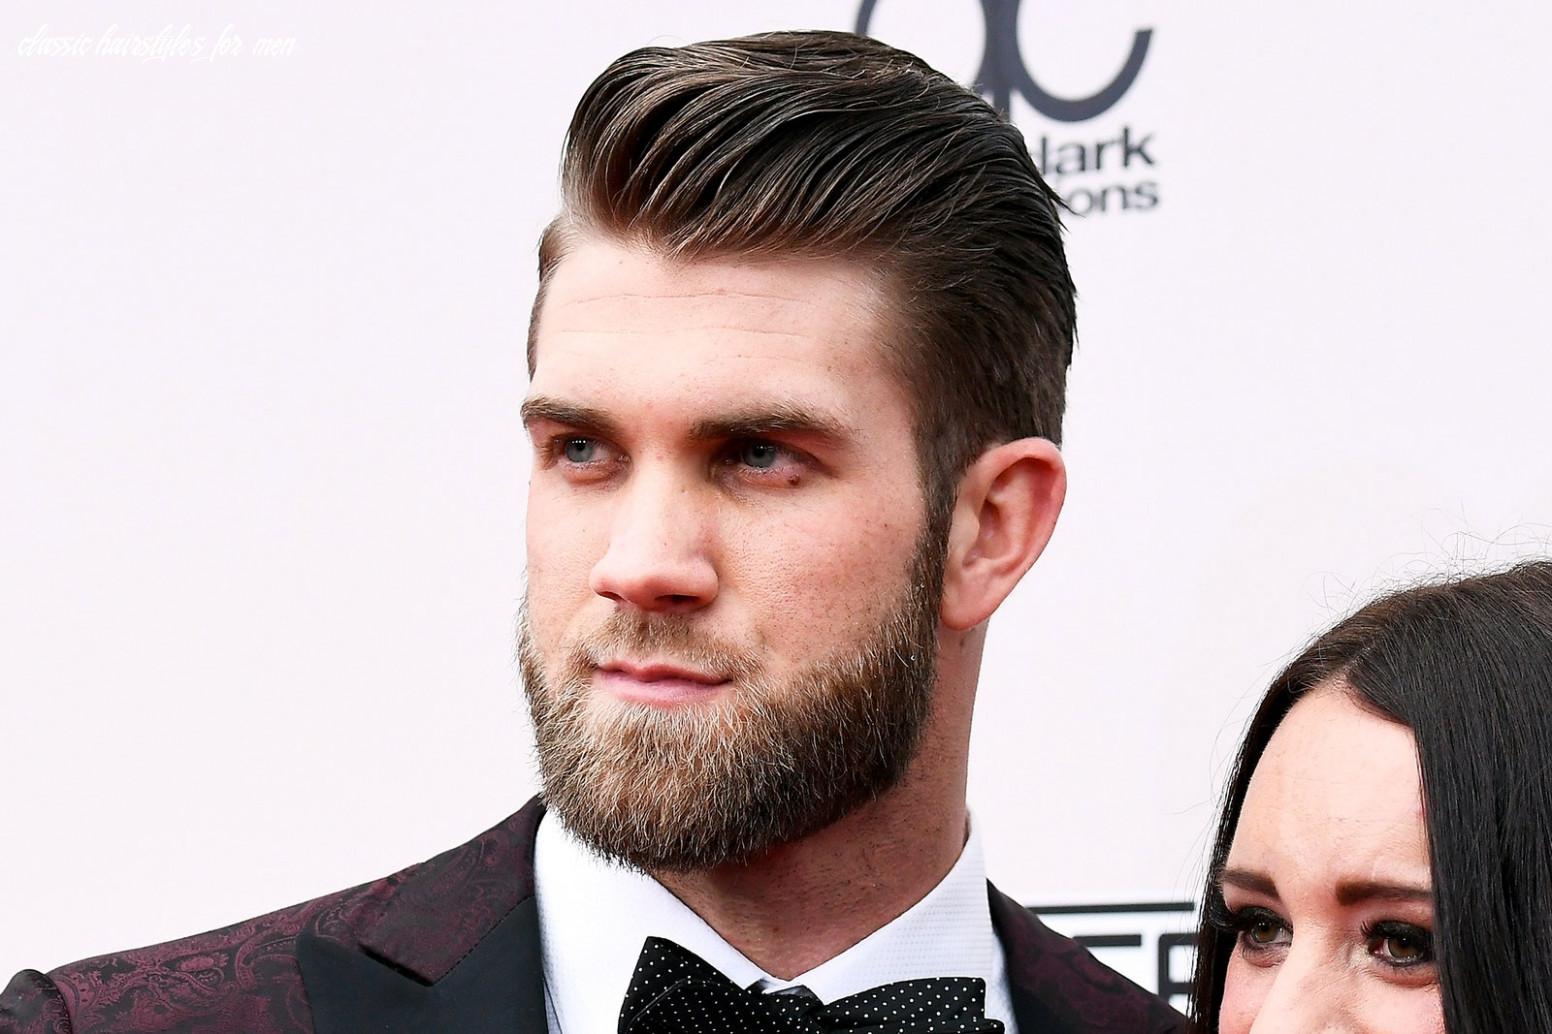 The best classic hairstyles for men   gq classic hairstyles for men